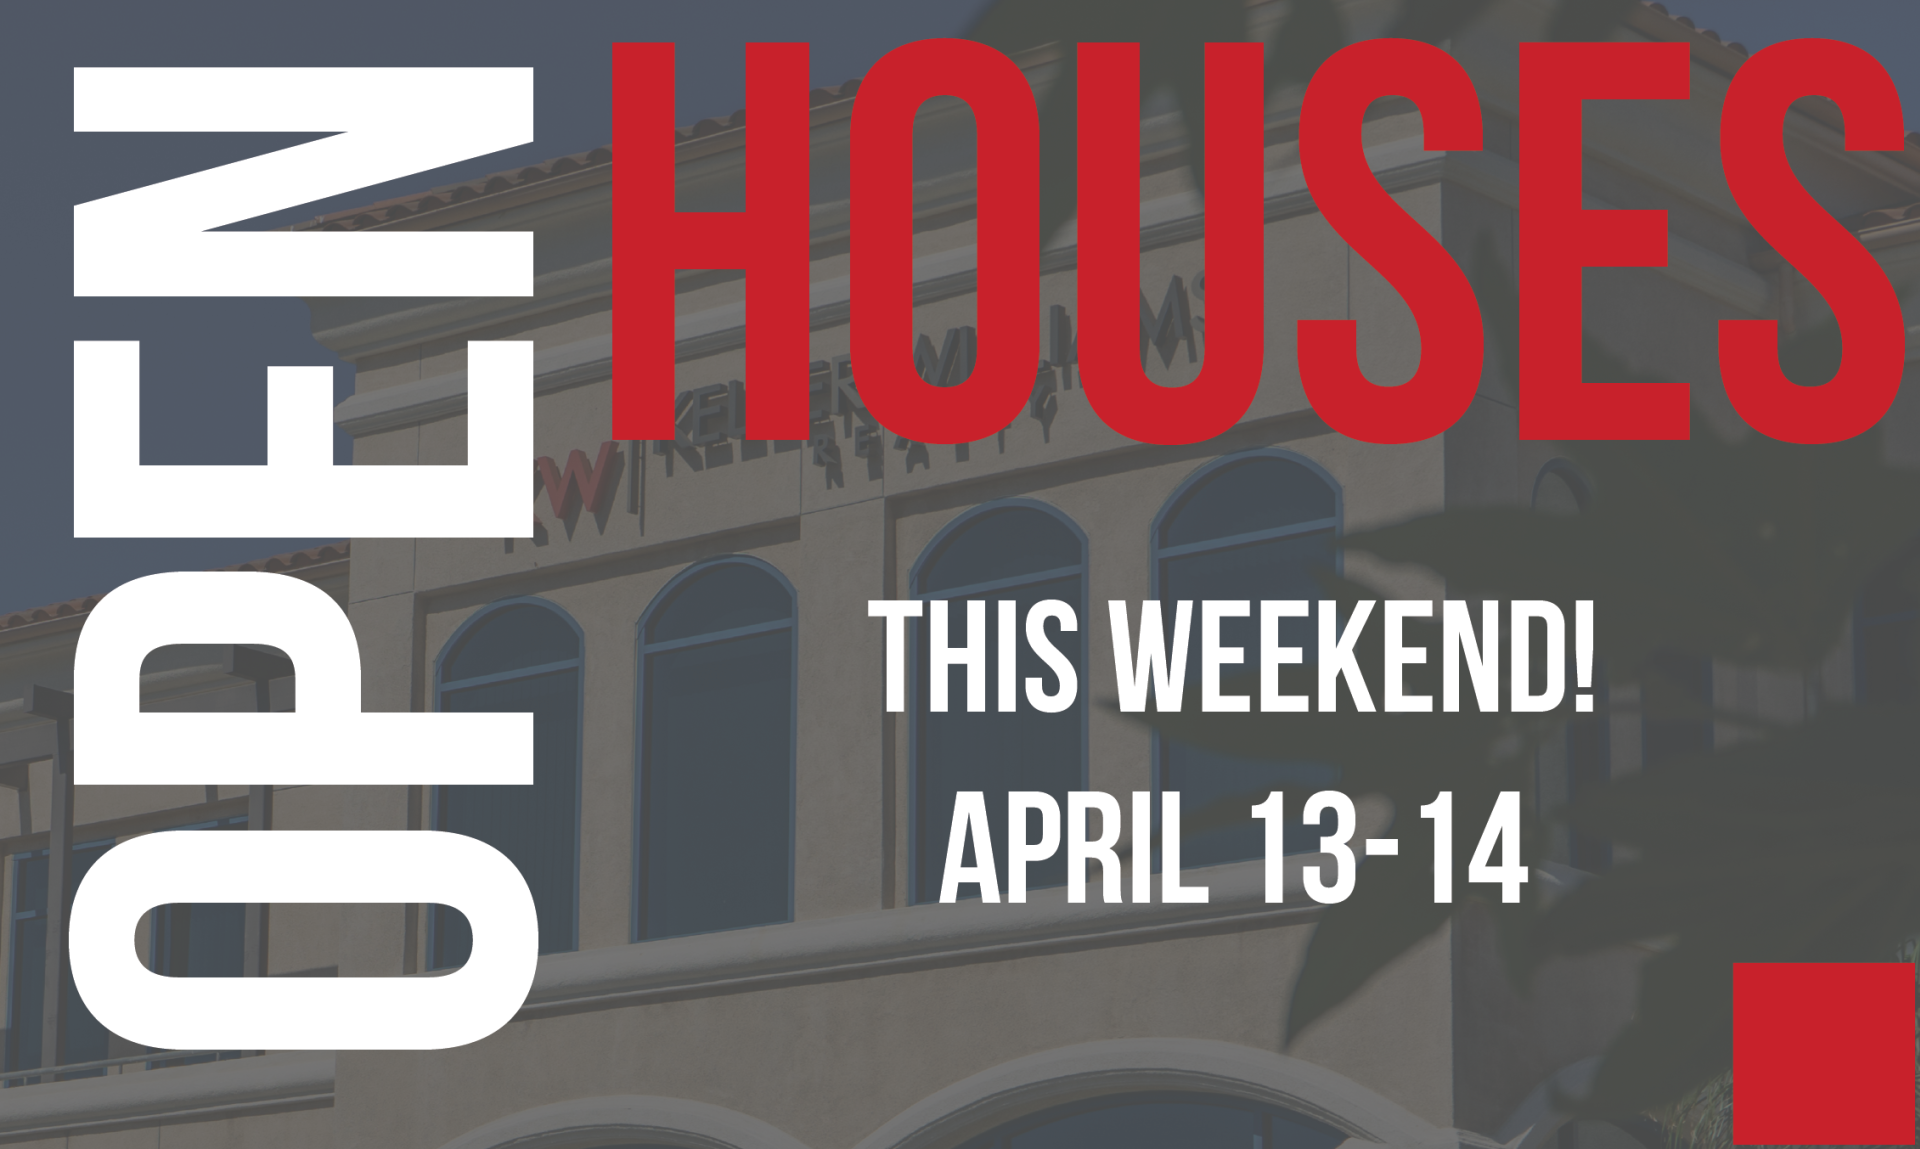 Open Houses This Weekend! April 13-14